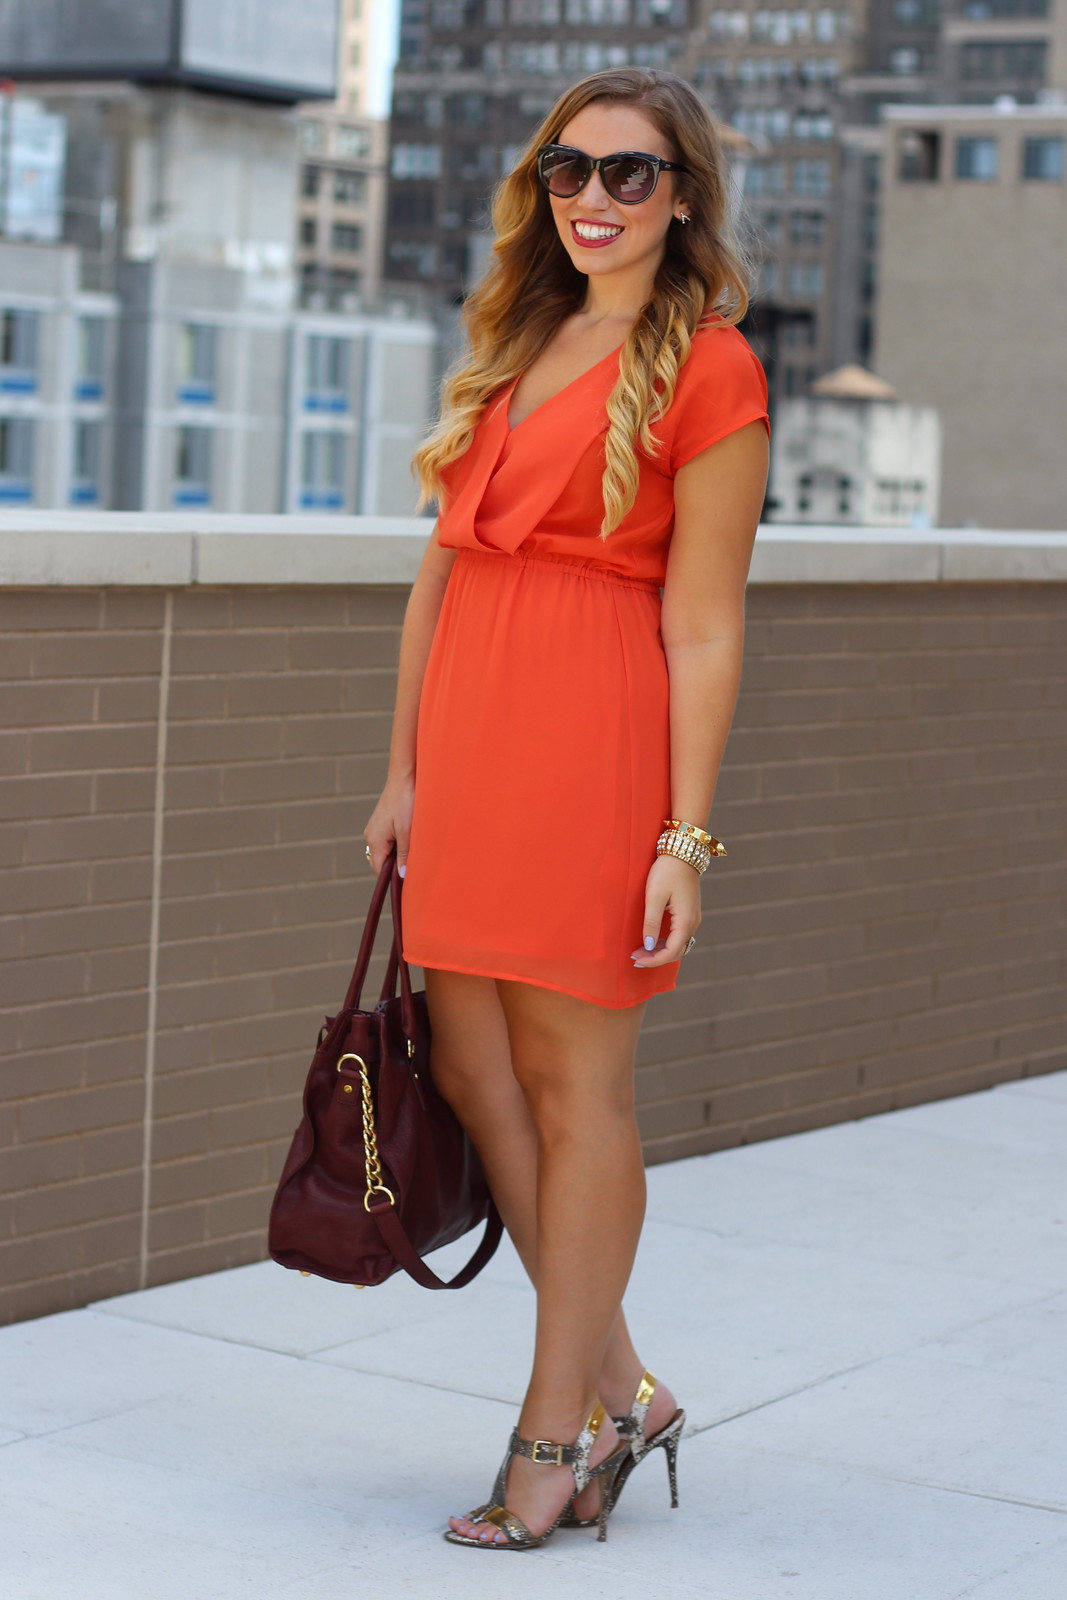 Orange Mini Dress | A Look Back at 10 Years of Blogging Living After Midnite Blogger Jackie Giardina